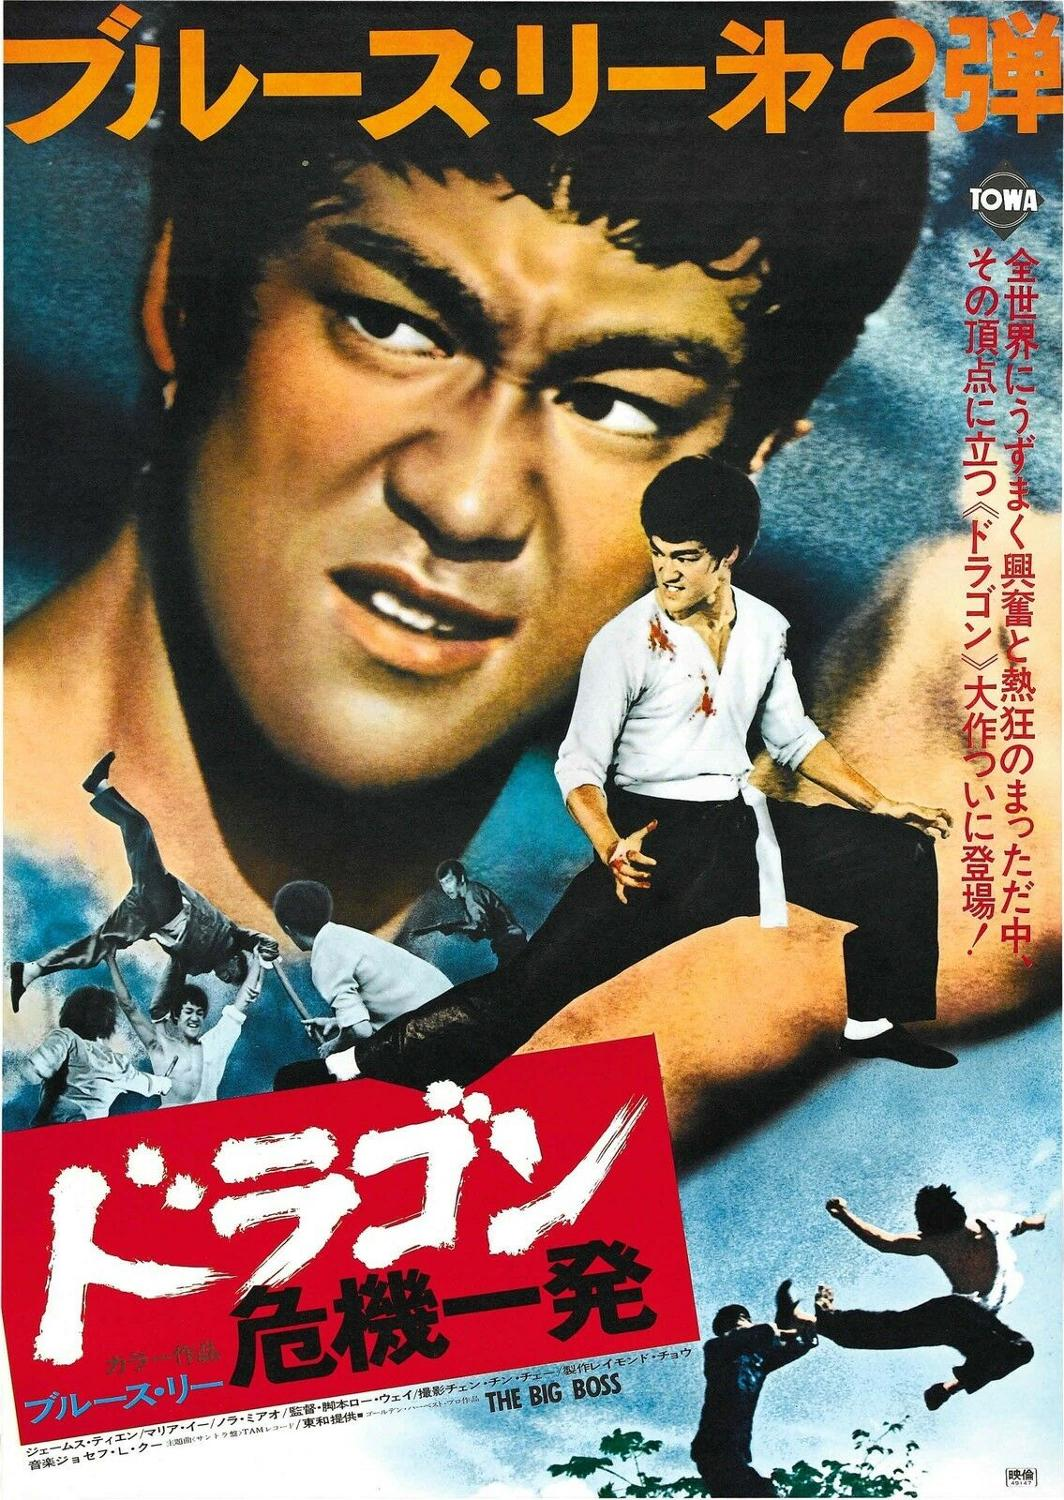 THE BIG BOSS aka FISTS OF FURY Movie Poster Bruce Lee Kung-Fu